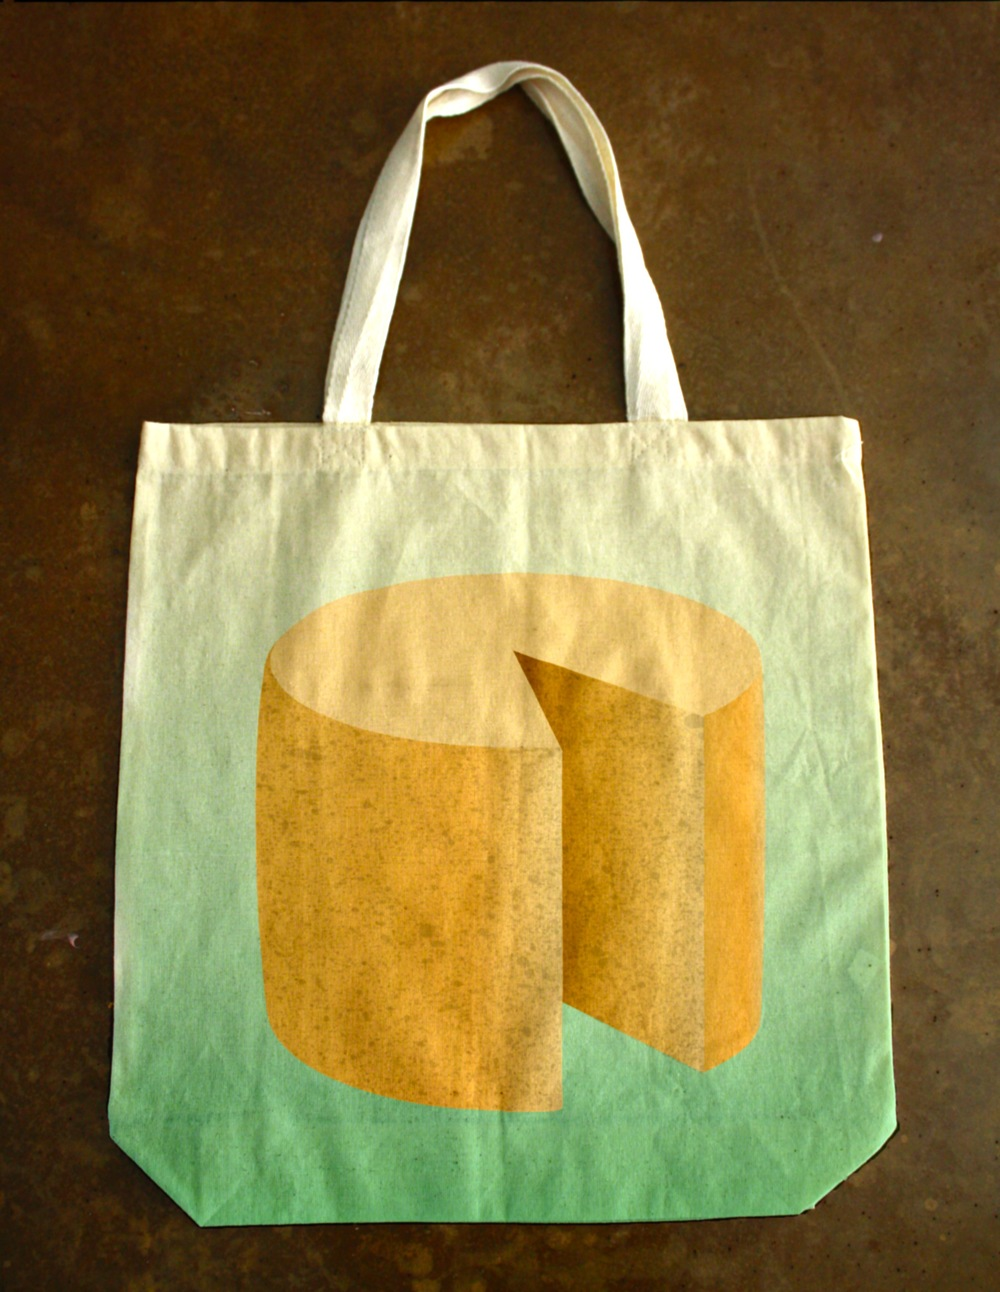 Tote: Cheese